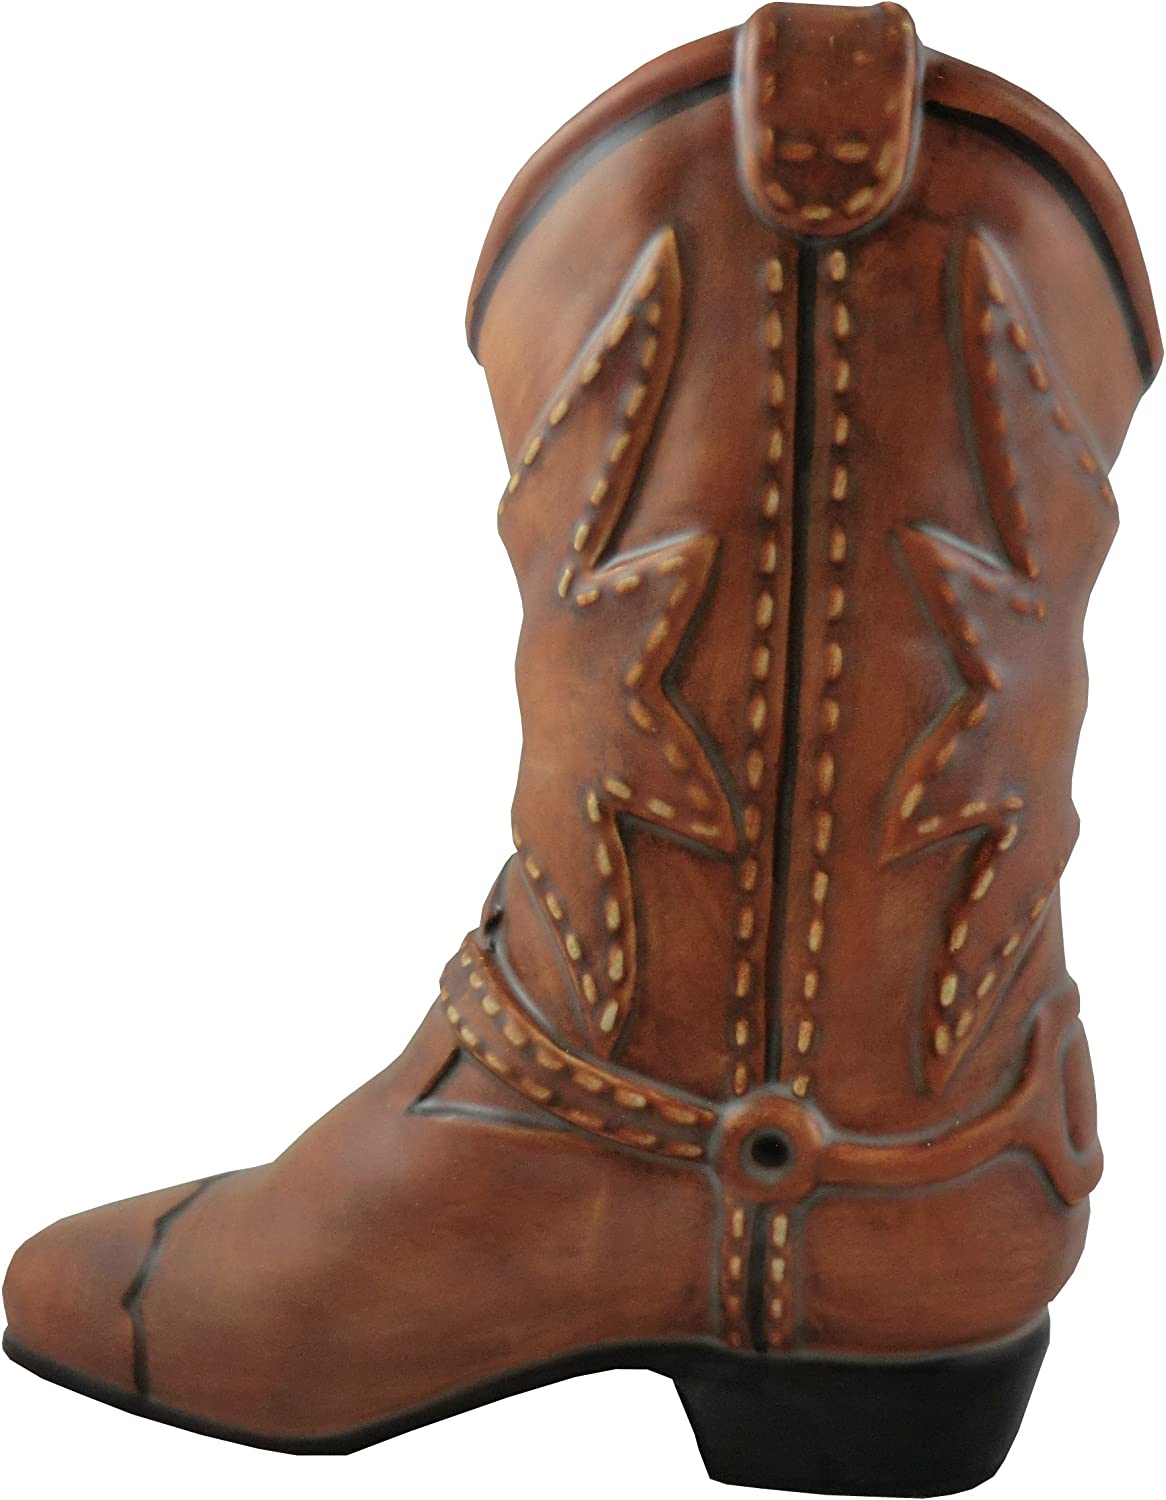 Accents & Occasions Ceramic Cowboy Boot Planter or Flower Arrangement Vase, 6-1/2-Inch